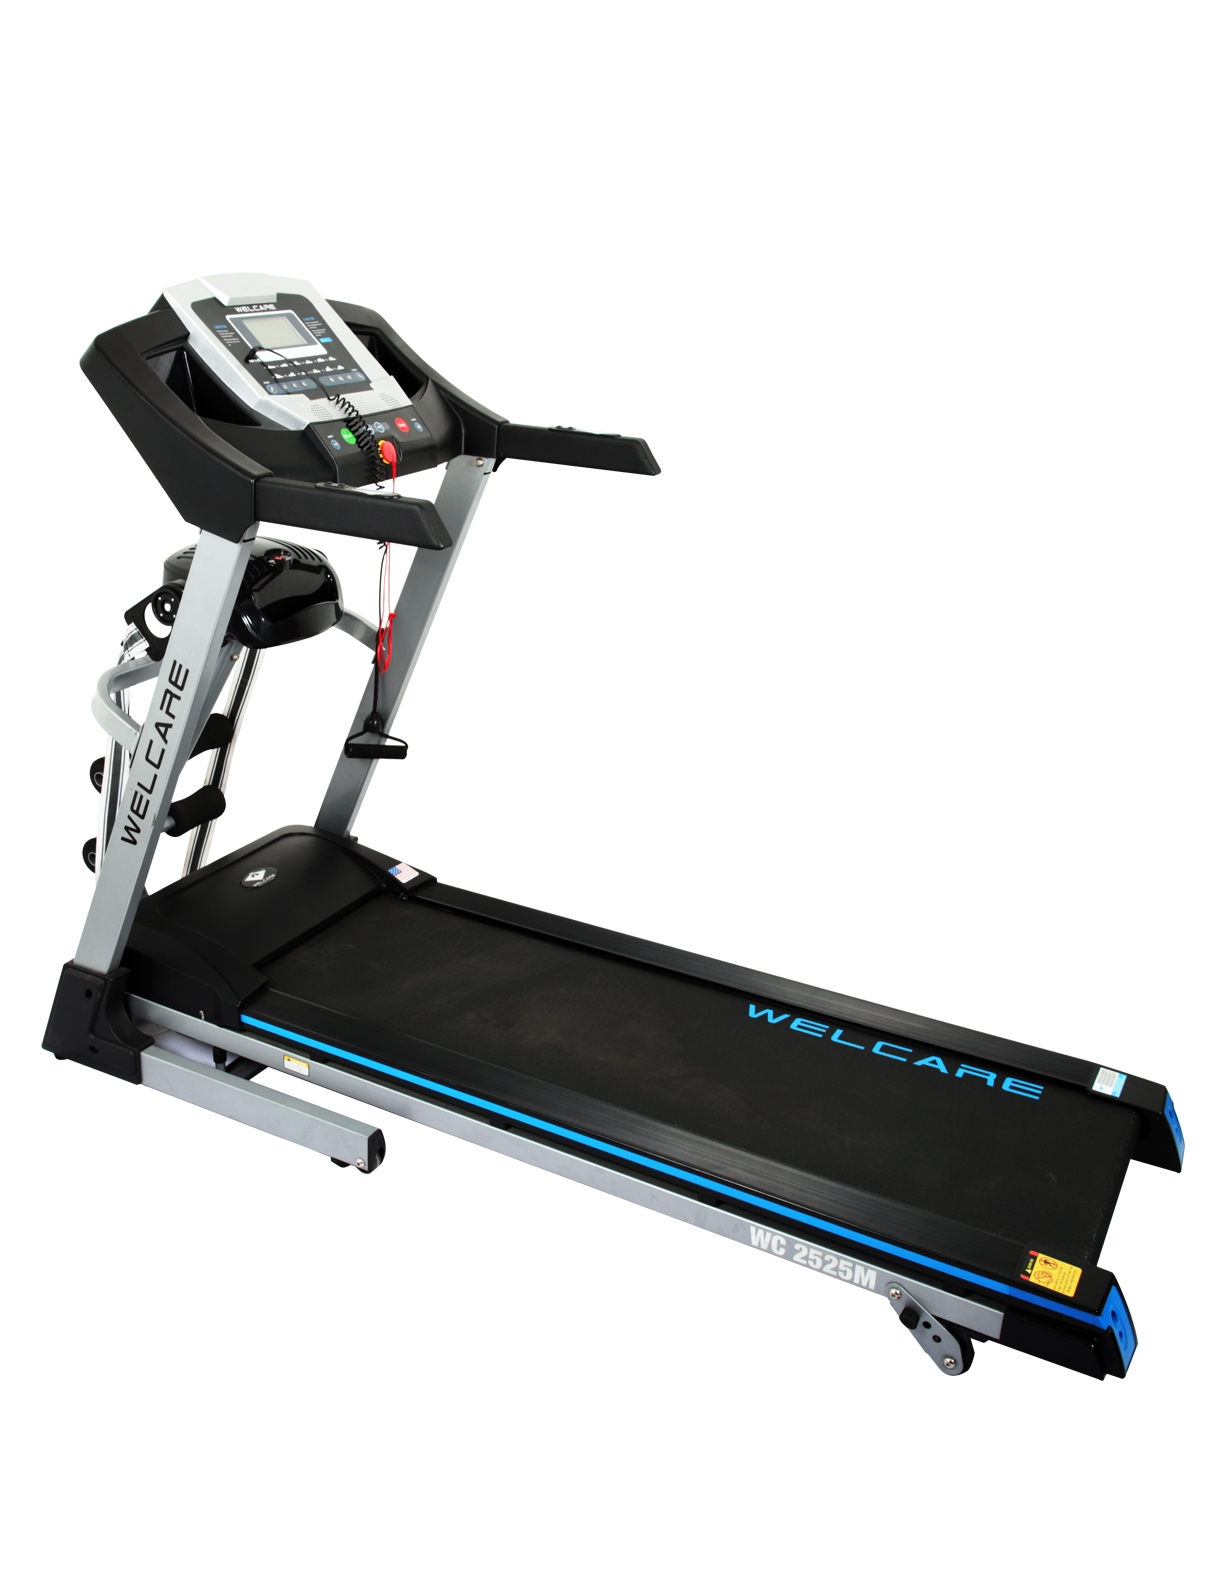 WC 2525M MOTORIZED TREADMILL